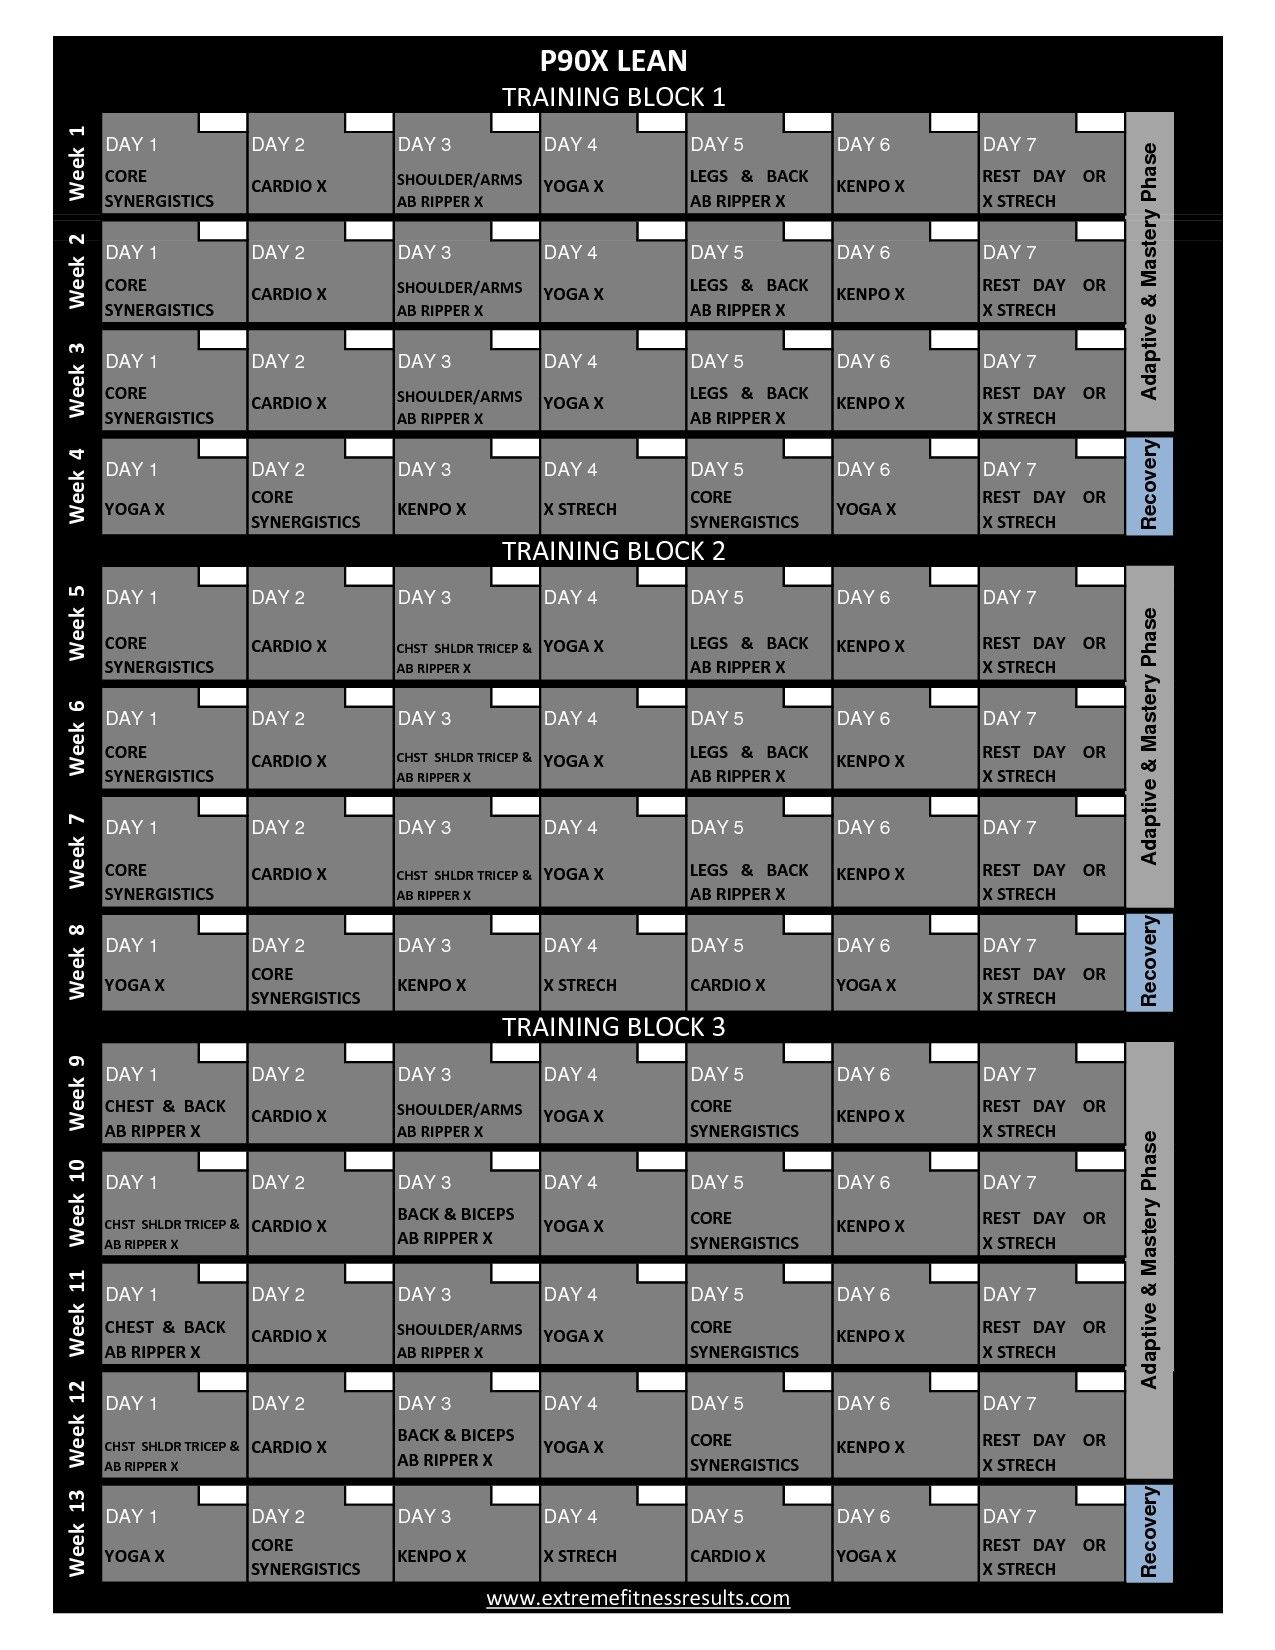 P90x Workout Calendar Printable P90x Classic Schedule Printable